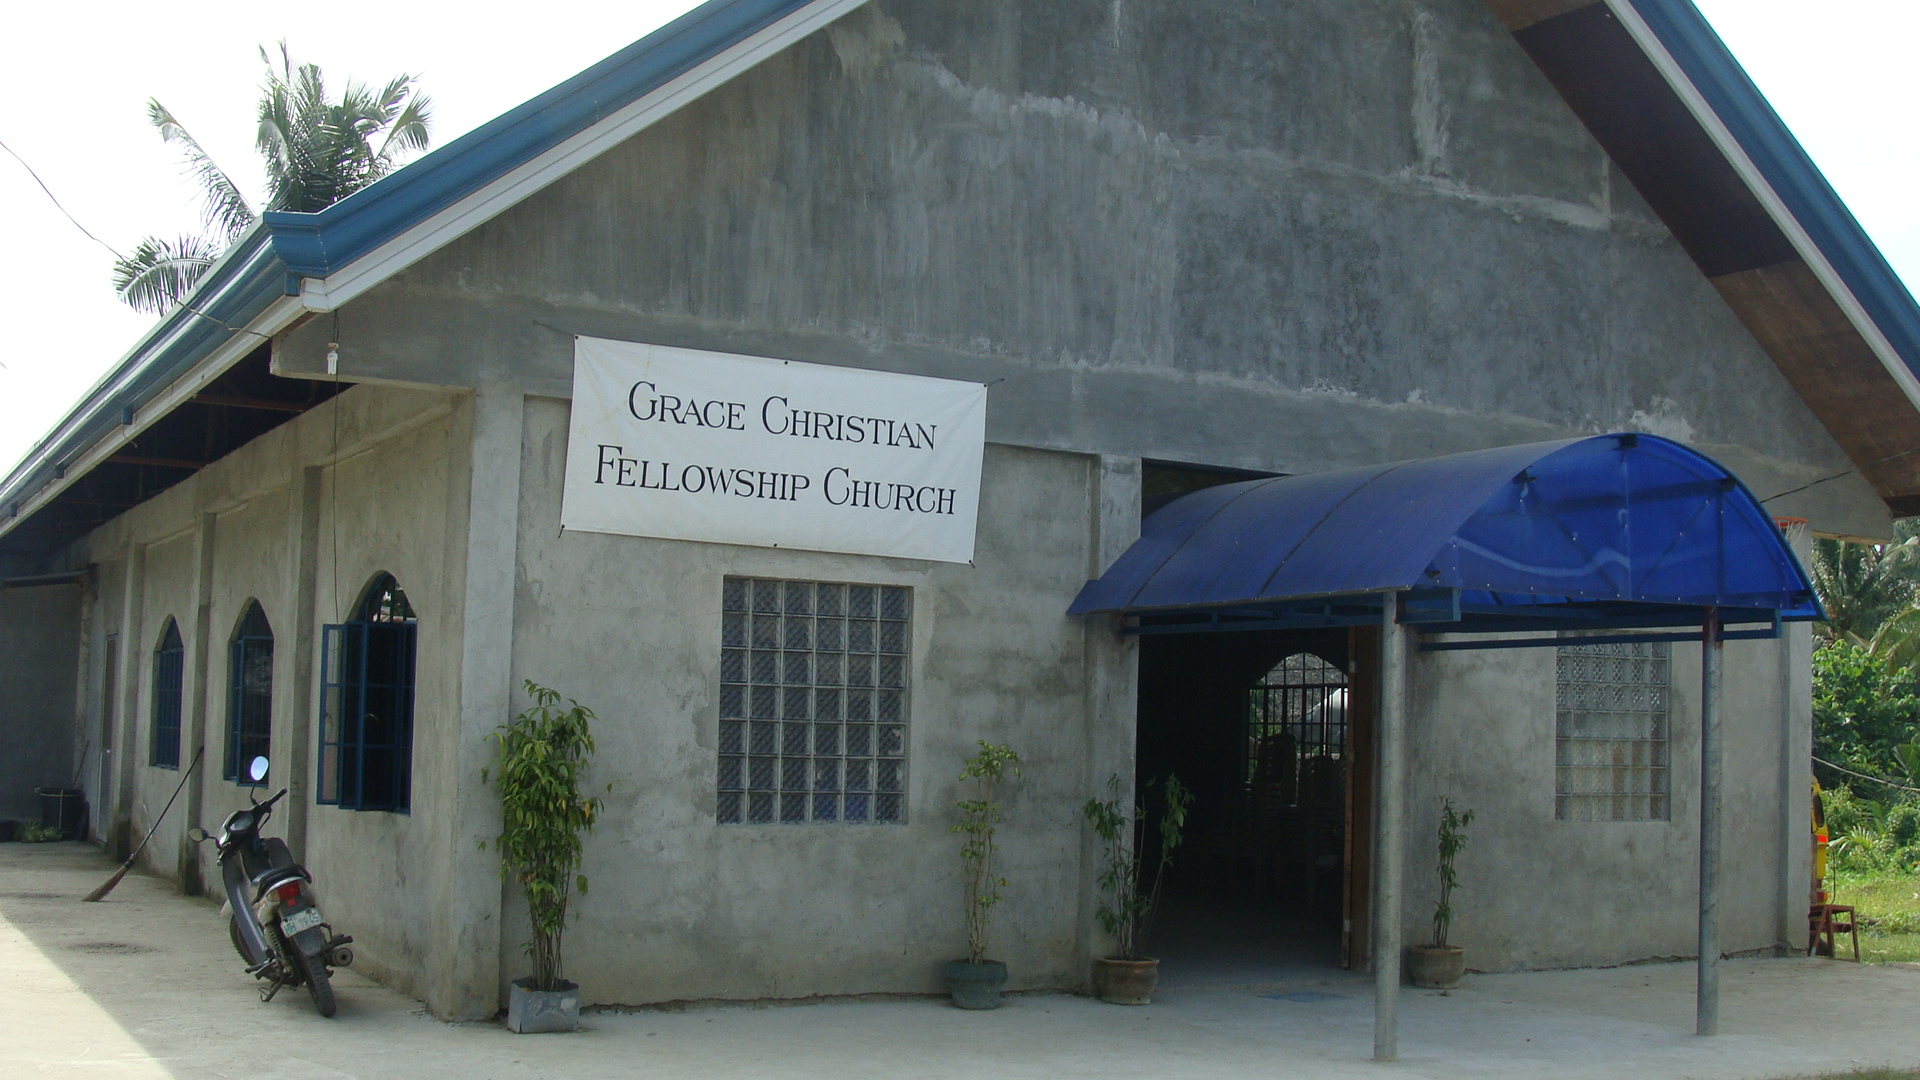 Grace Christian Fellowship Church, Calbahog City, Philippines